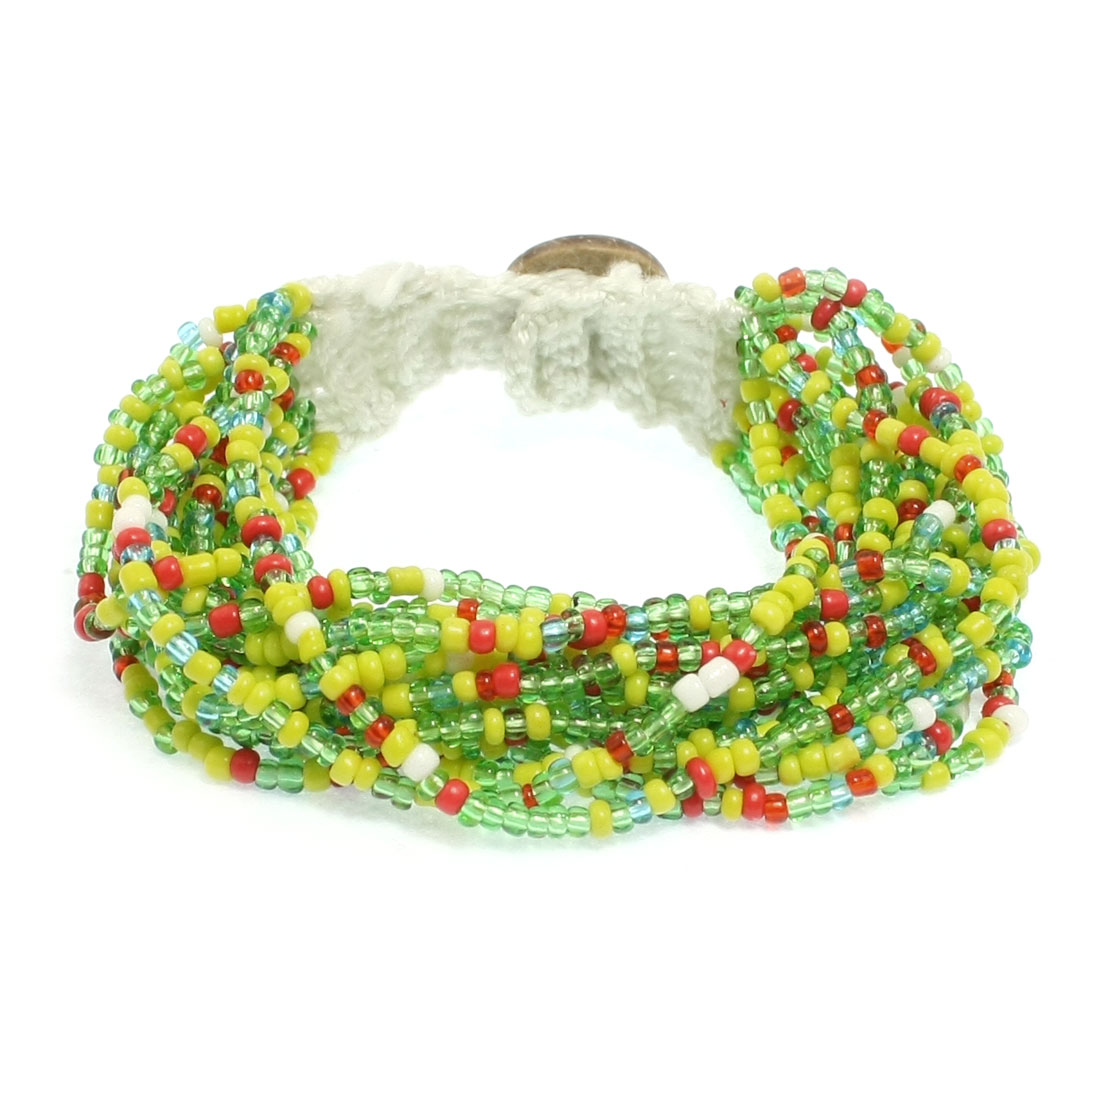 Lady Multicolored Multi String Beaded Handamade Bracelet Wrist Decor